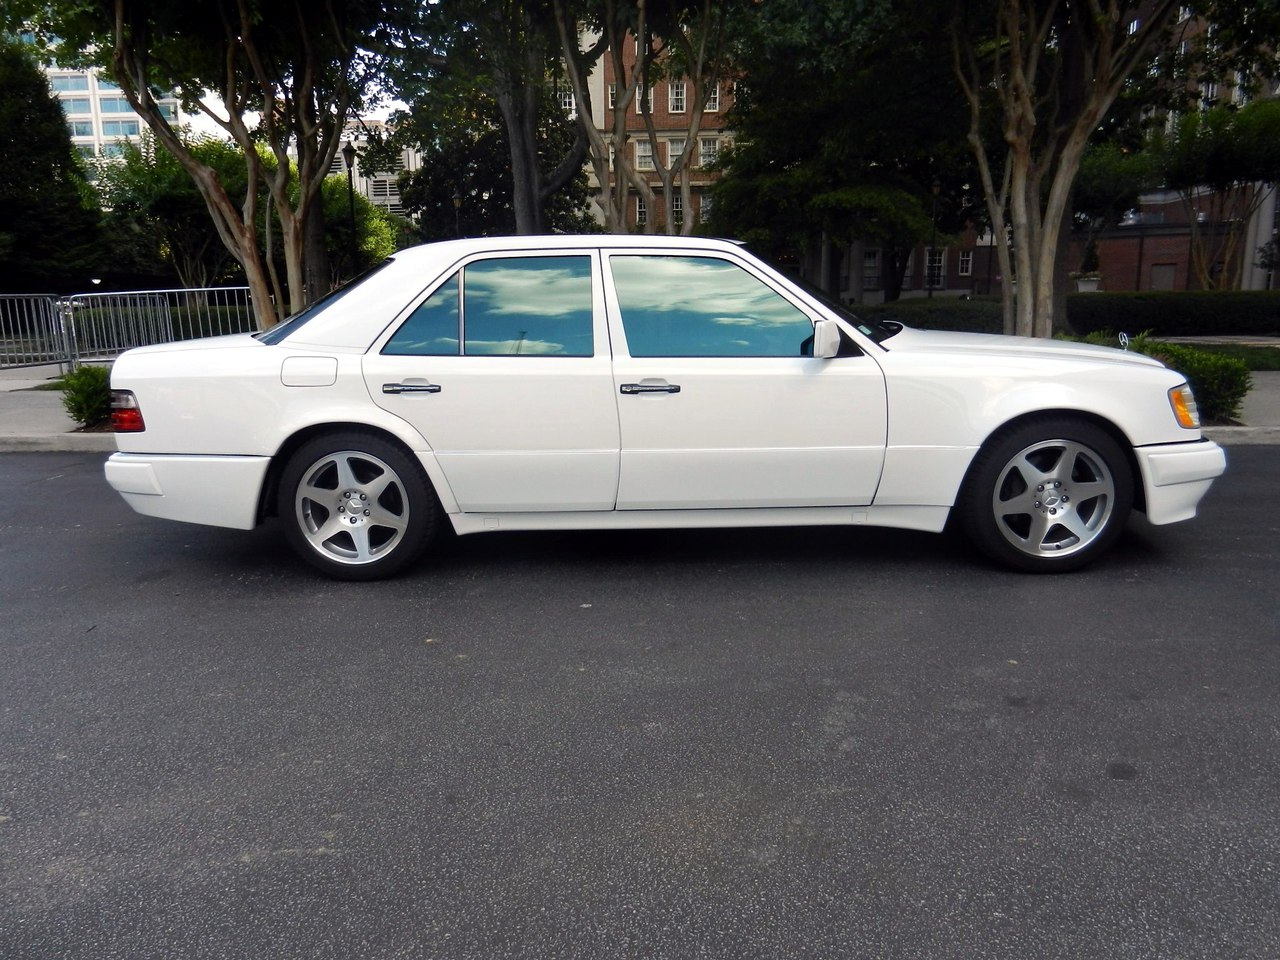 1994 mercedes benz e500 w124 white on evo wheels benztuning. Black Bedroom Furniture Sets. Home Design Ideas